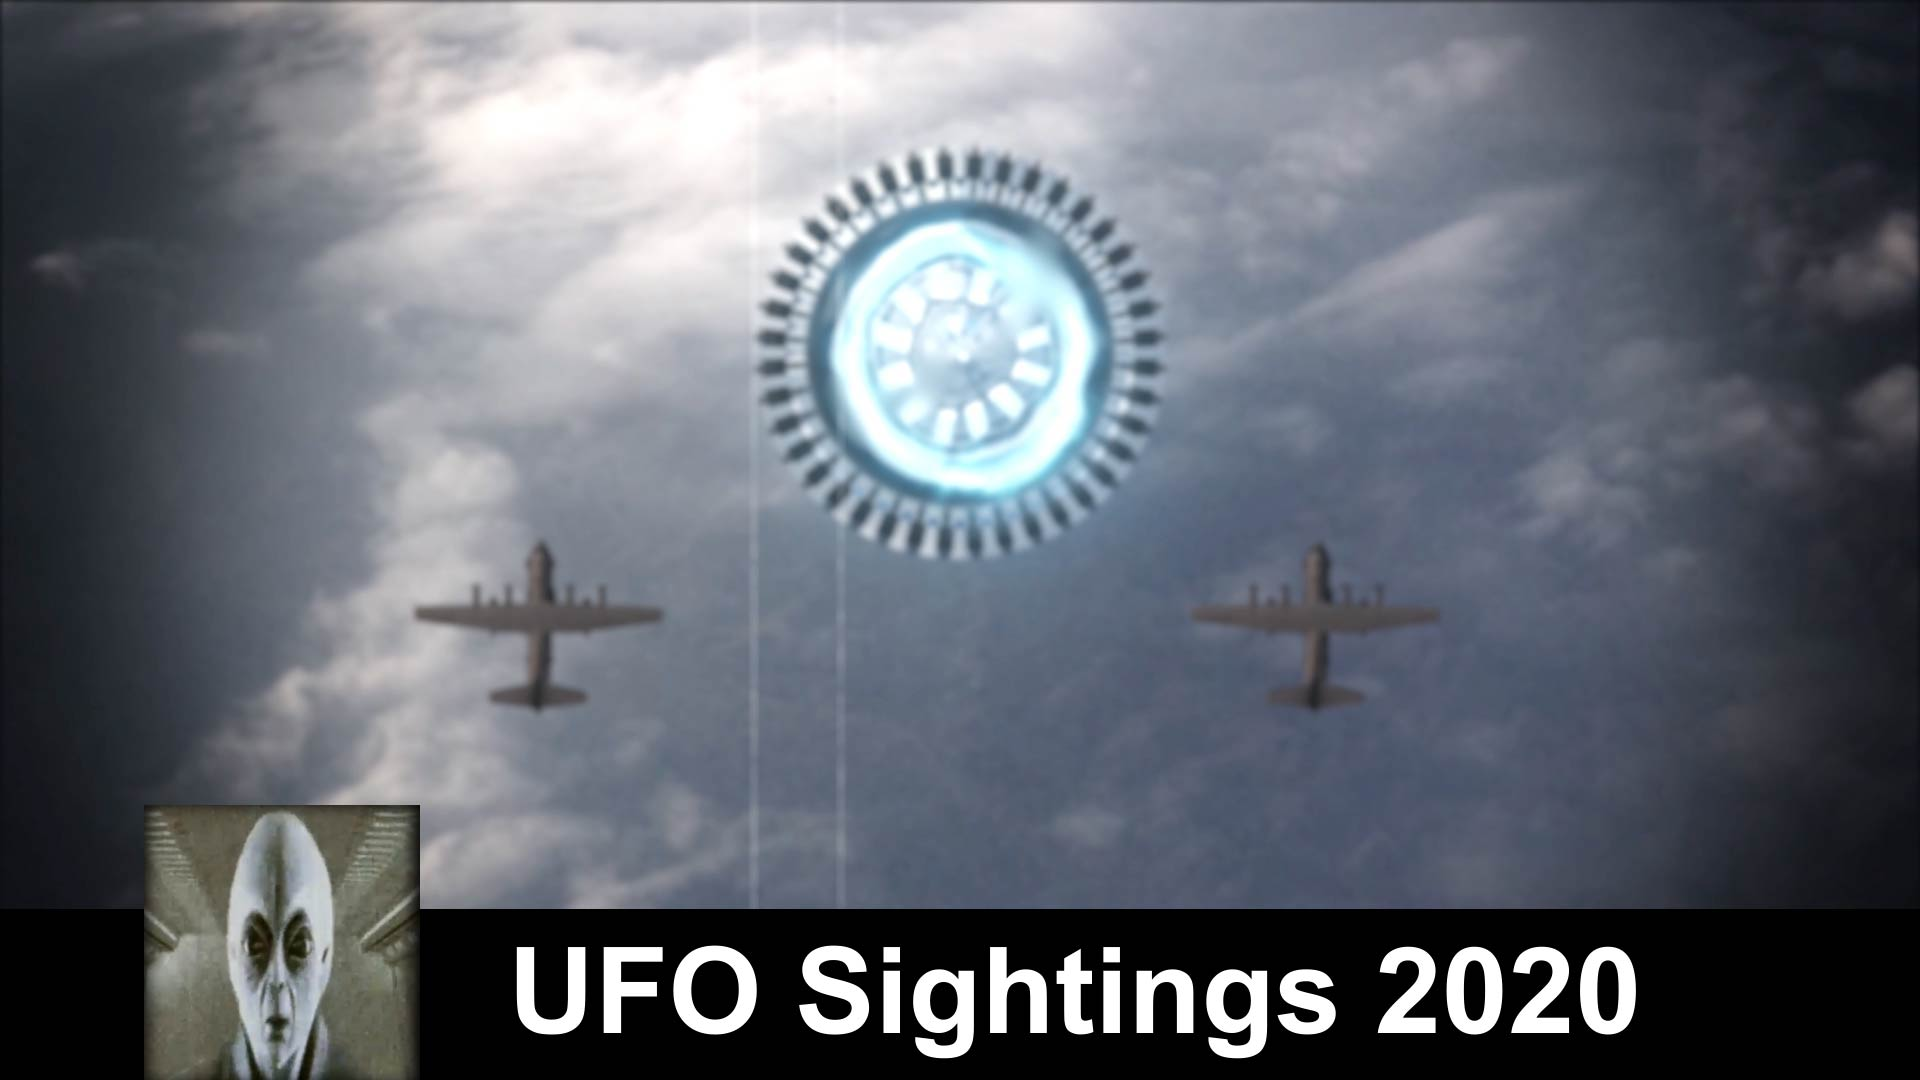 UFO Sightings 2020 Huge Mother Ship Escorted By Planes